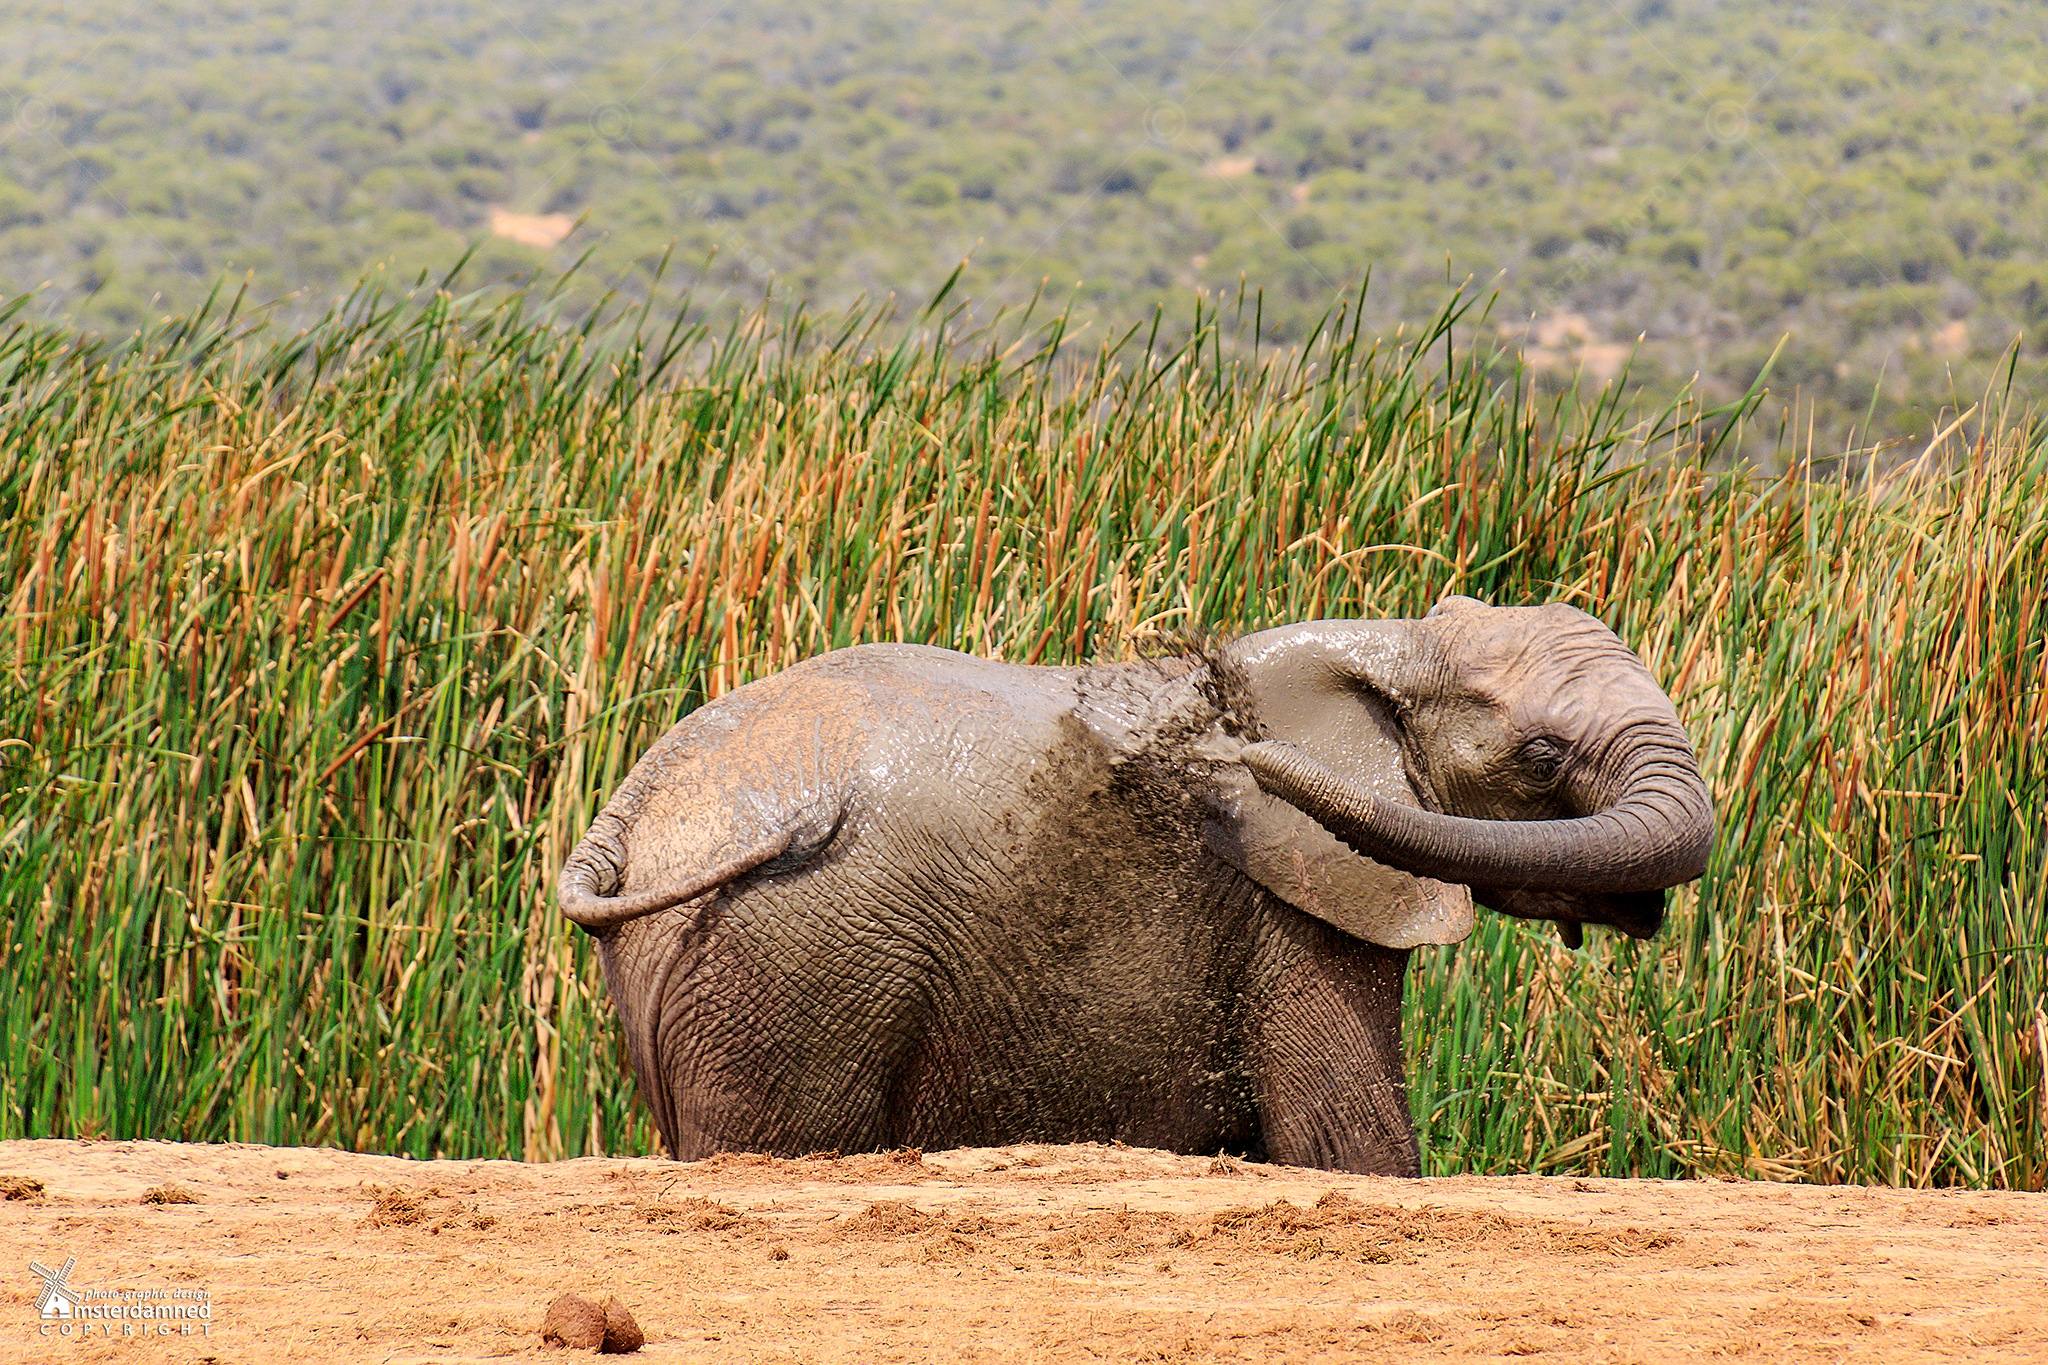 Addo, South Africa by Michael